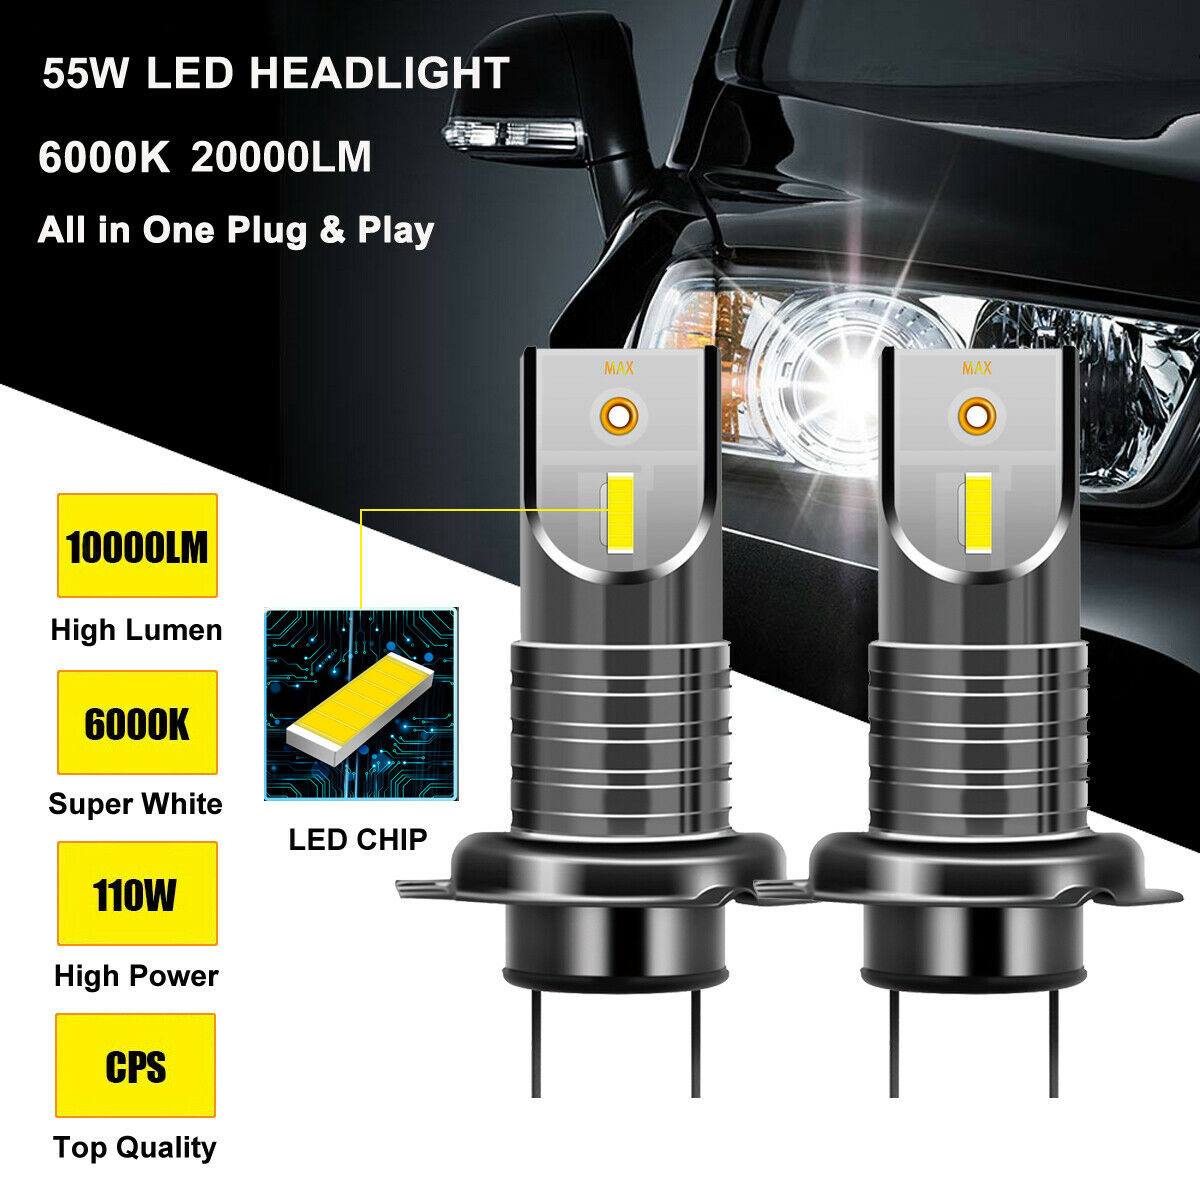 1 Pair <font><b>H7</b></font> 110W 5050 CSP <font><b>LED</b></font> Headlight Bulb Lamp <font><b>20000LM</b></font> <font><b>6000K</b></font> Waterproof 9V-32V image